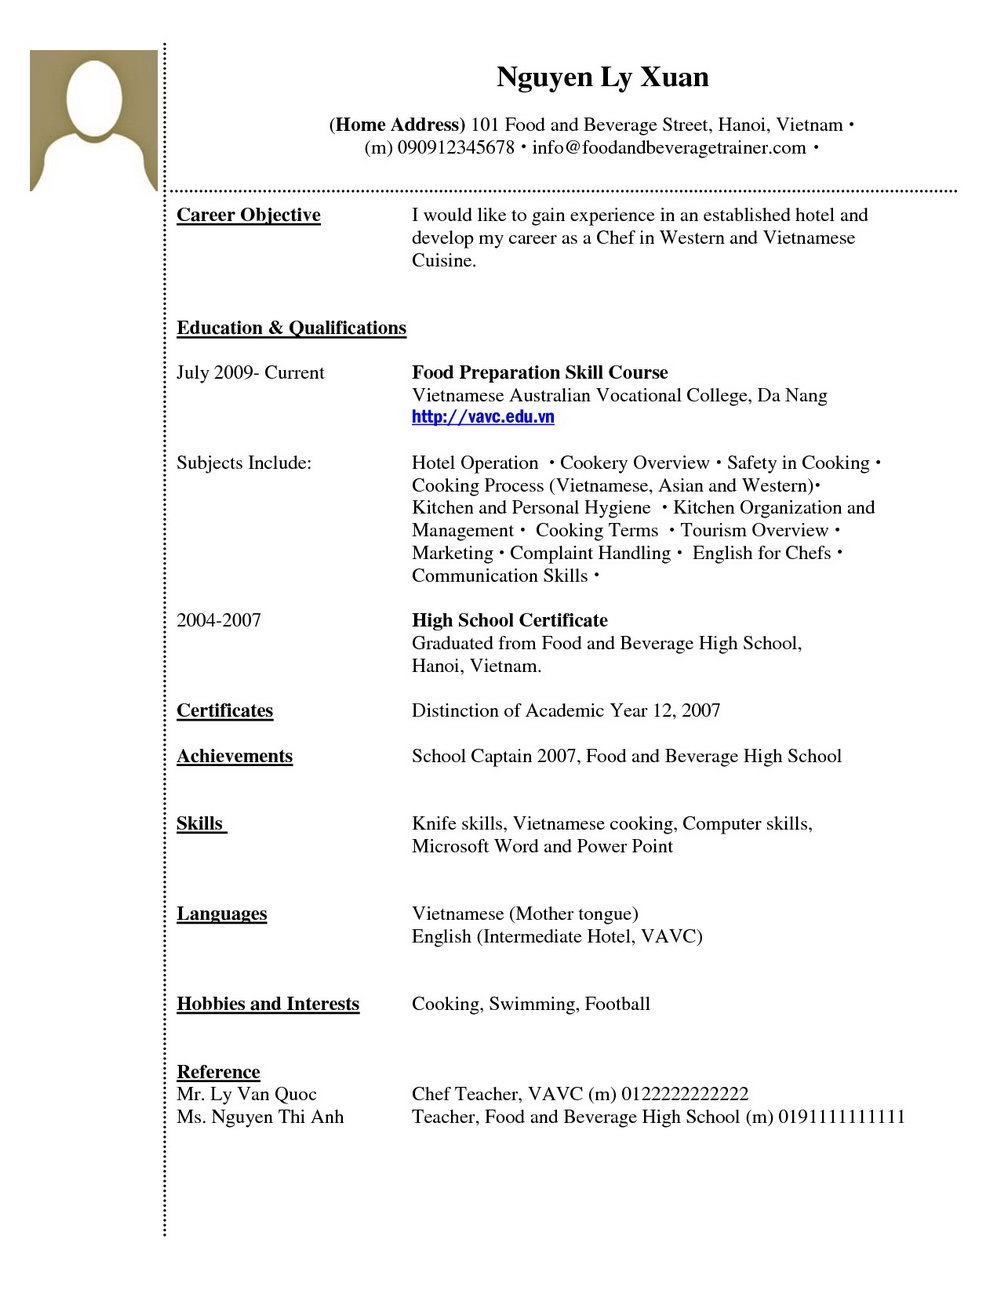 Sample Resume Format For Nurses In The Philippines